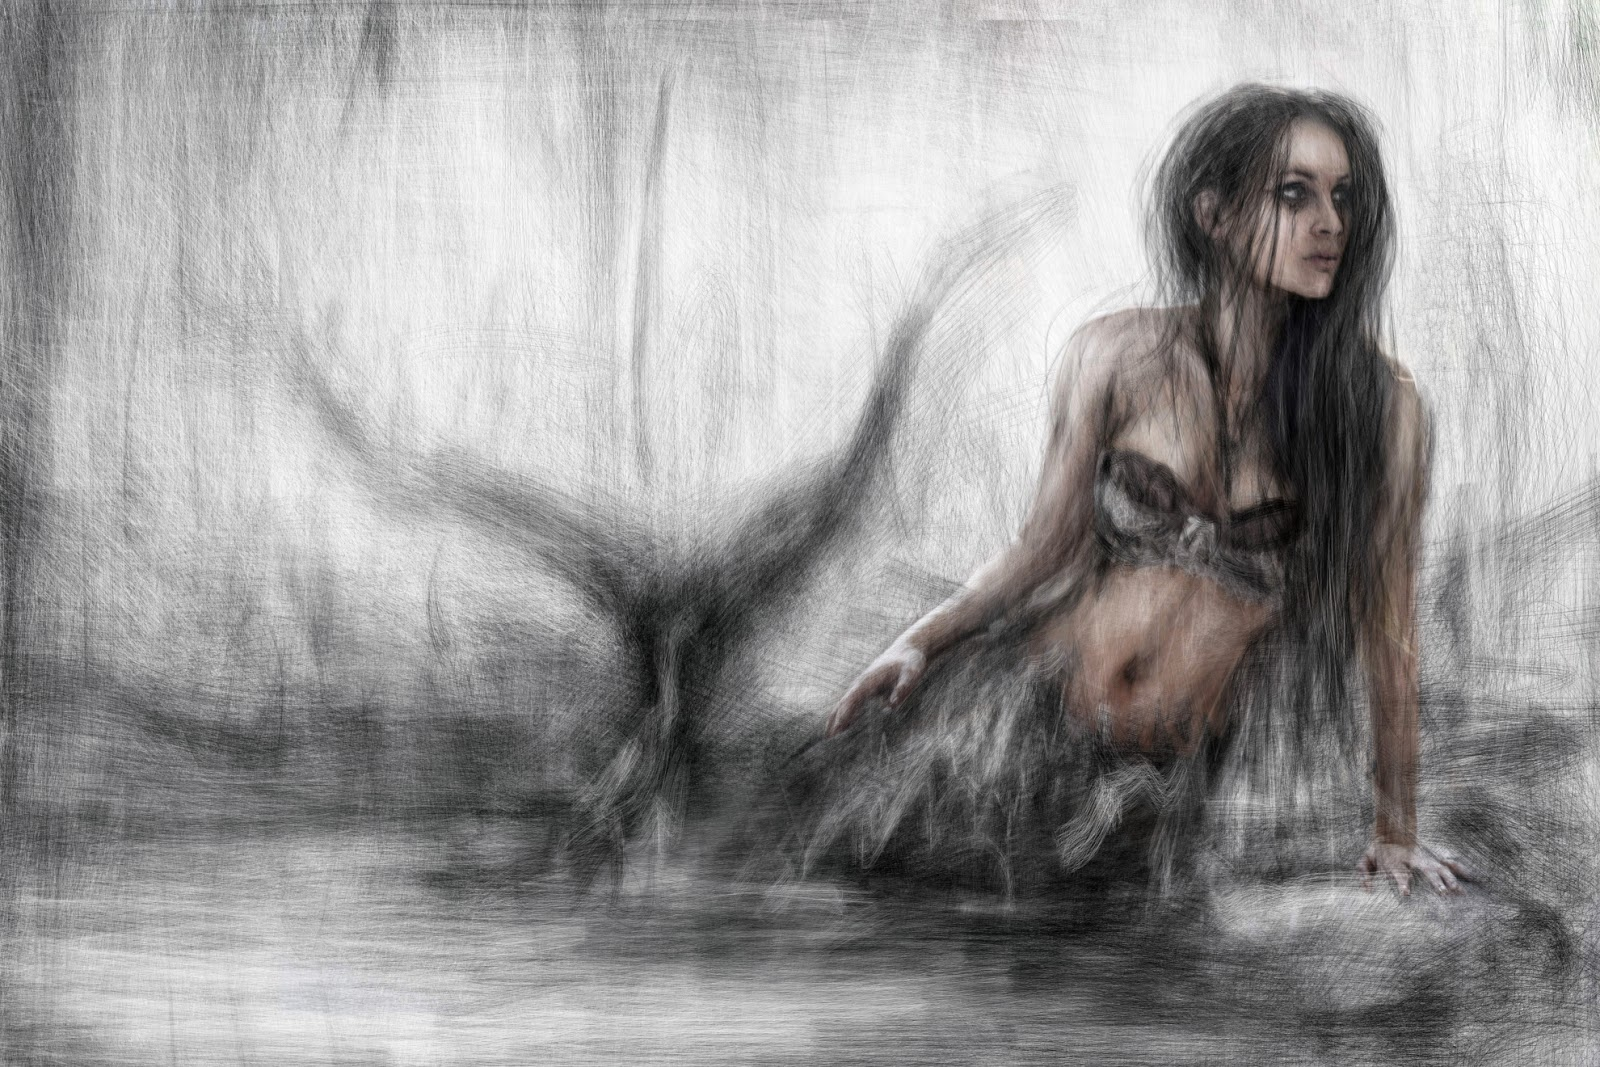 Mermaid painting by Justin Gedak